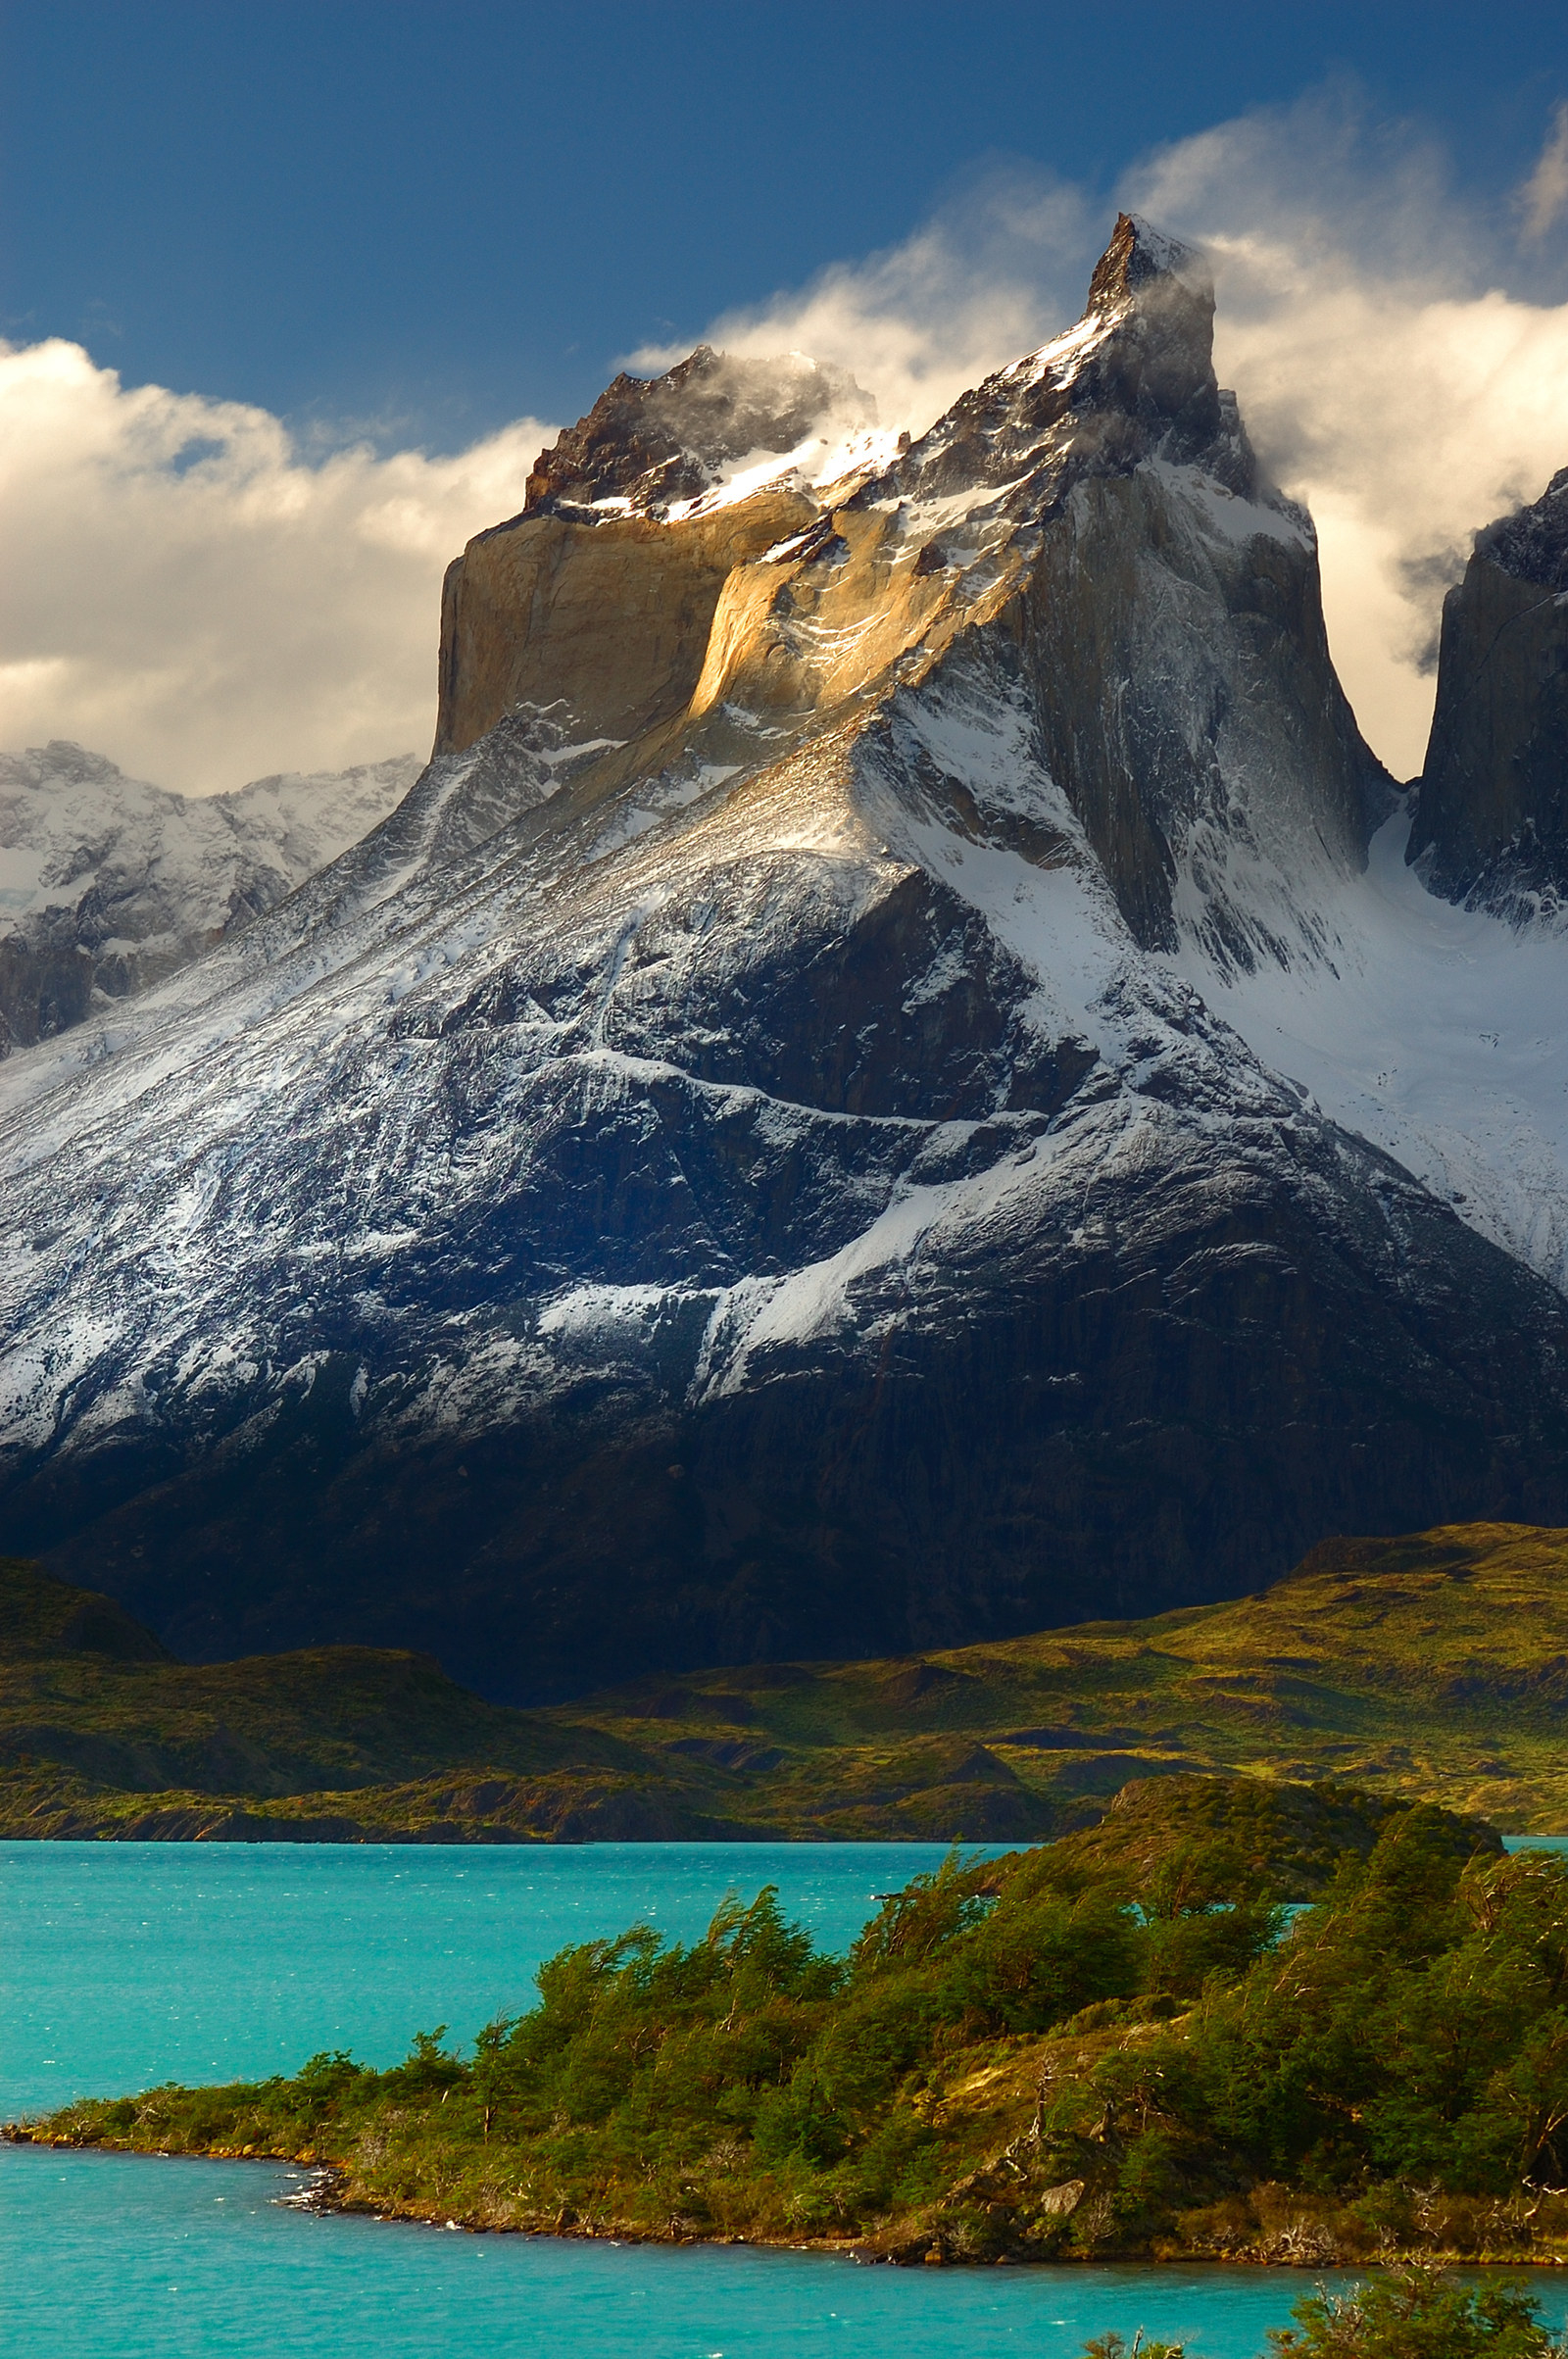 Chile: Torres del Paine National Park -  You'll find Torres Del Paine in Chile's Patagonia region.